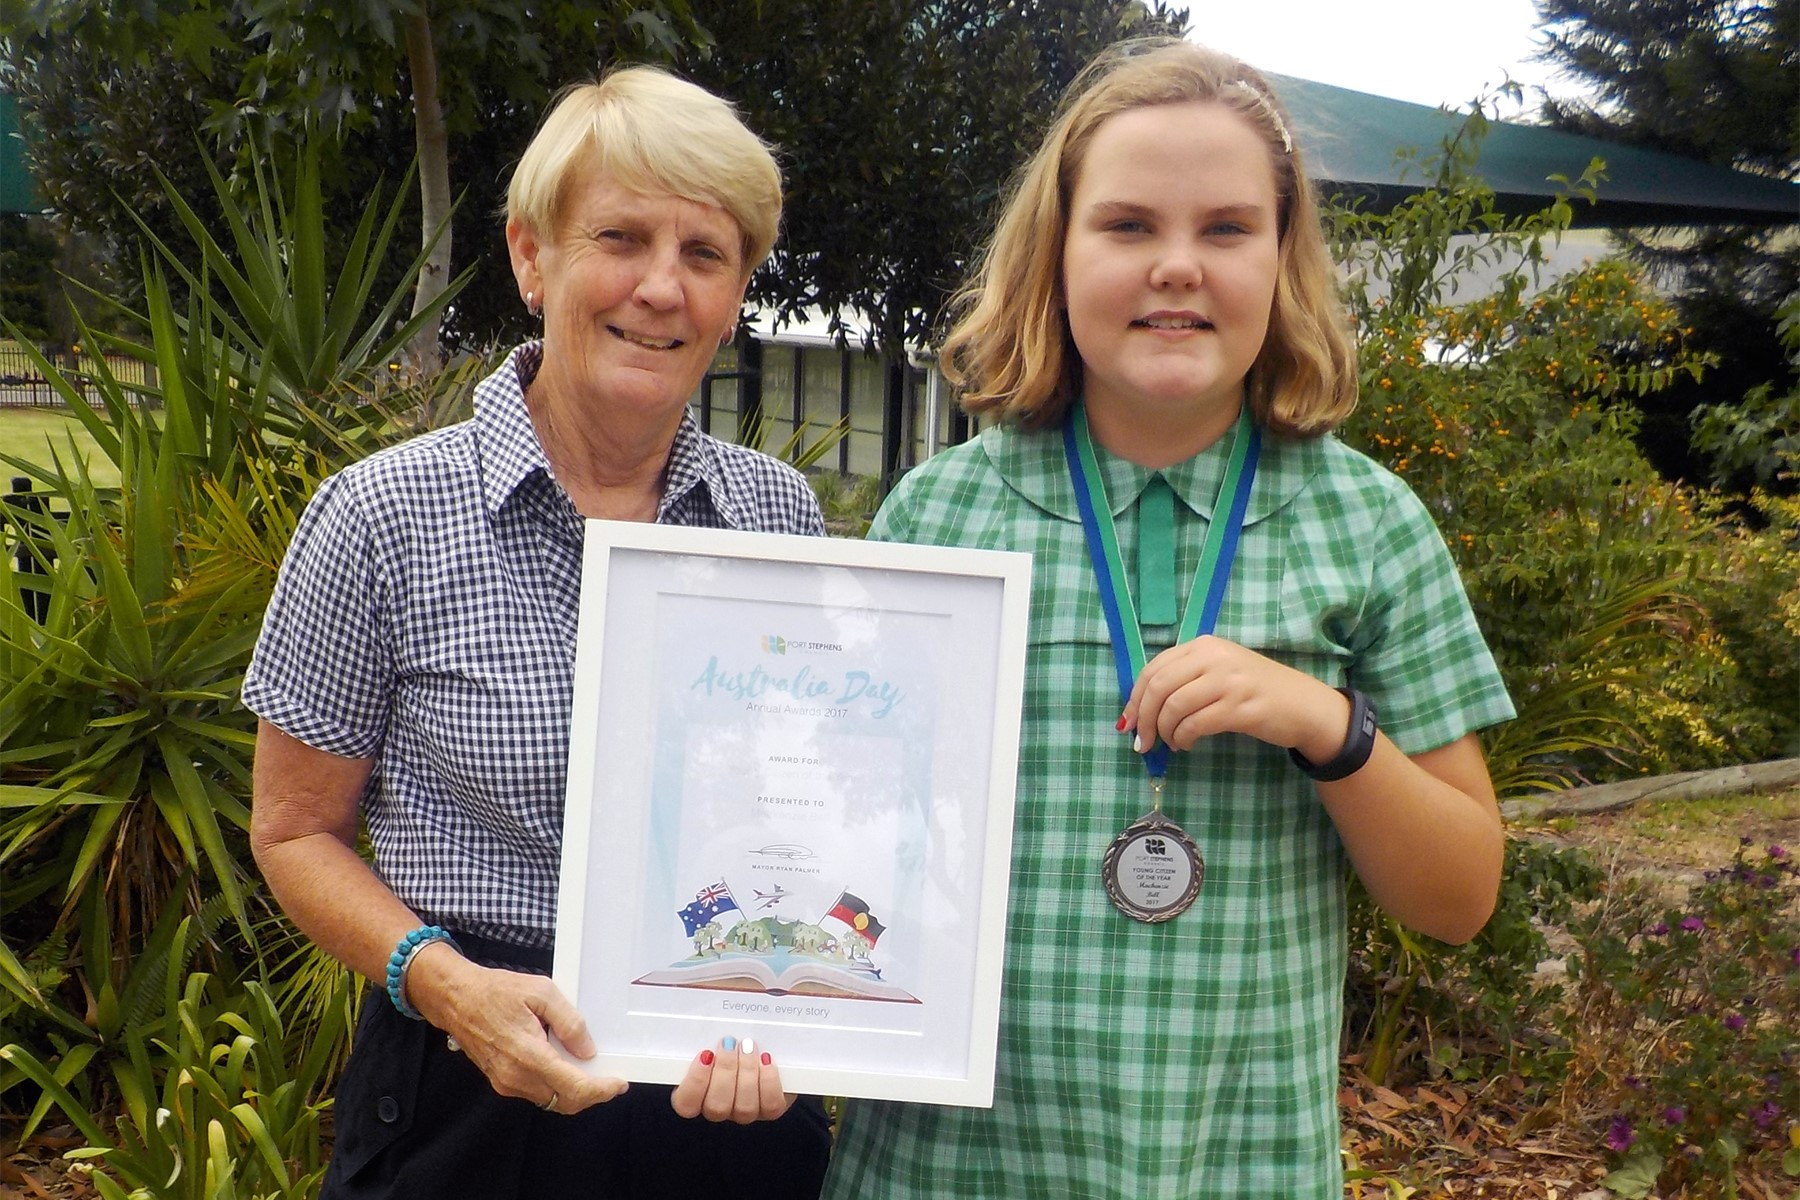 Image:St Michael's student named Young Citizen of the Year in Port Stephens